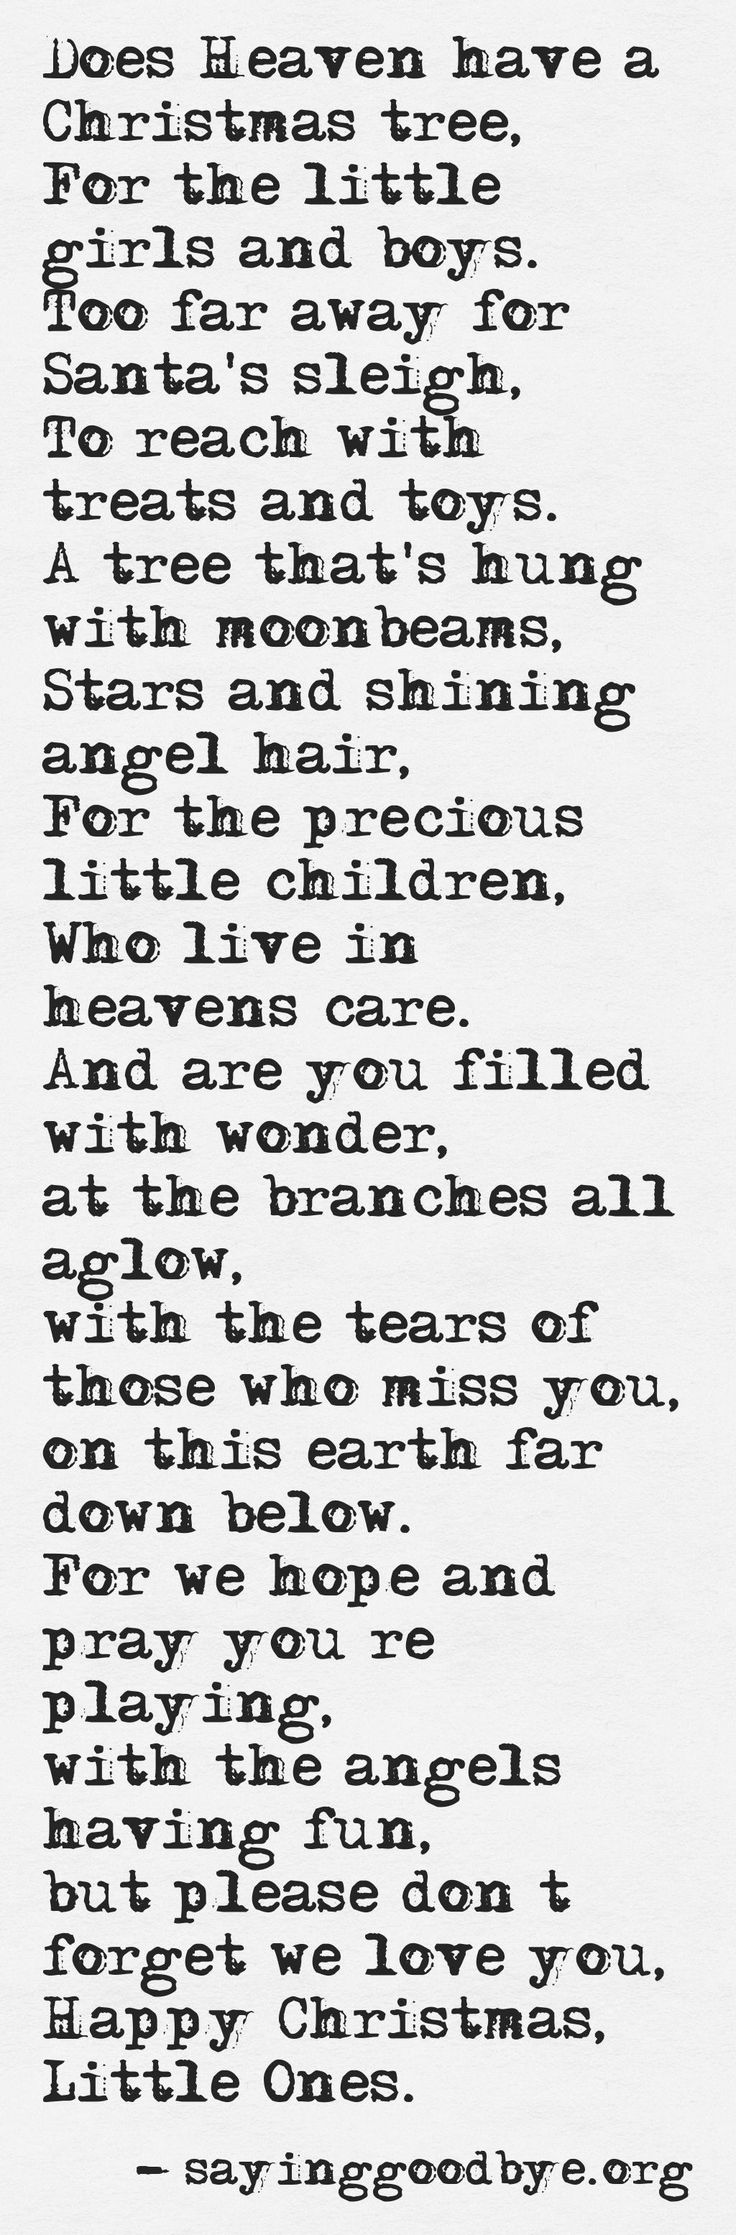 For Noah and the little ones I never got to know..CLP